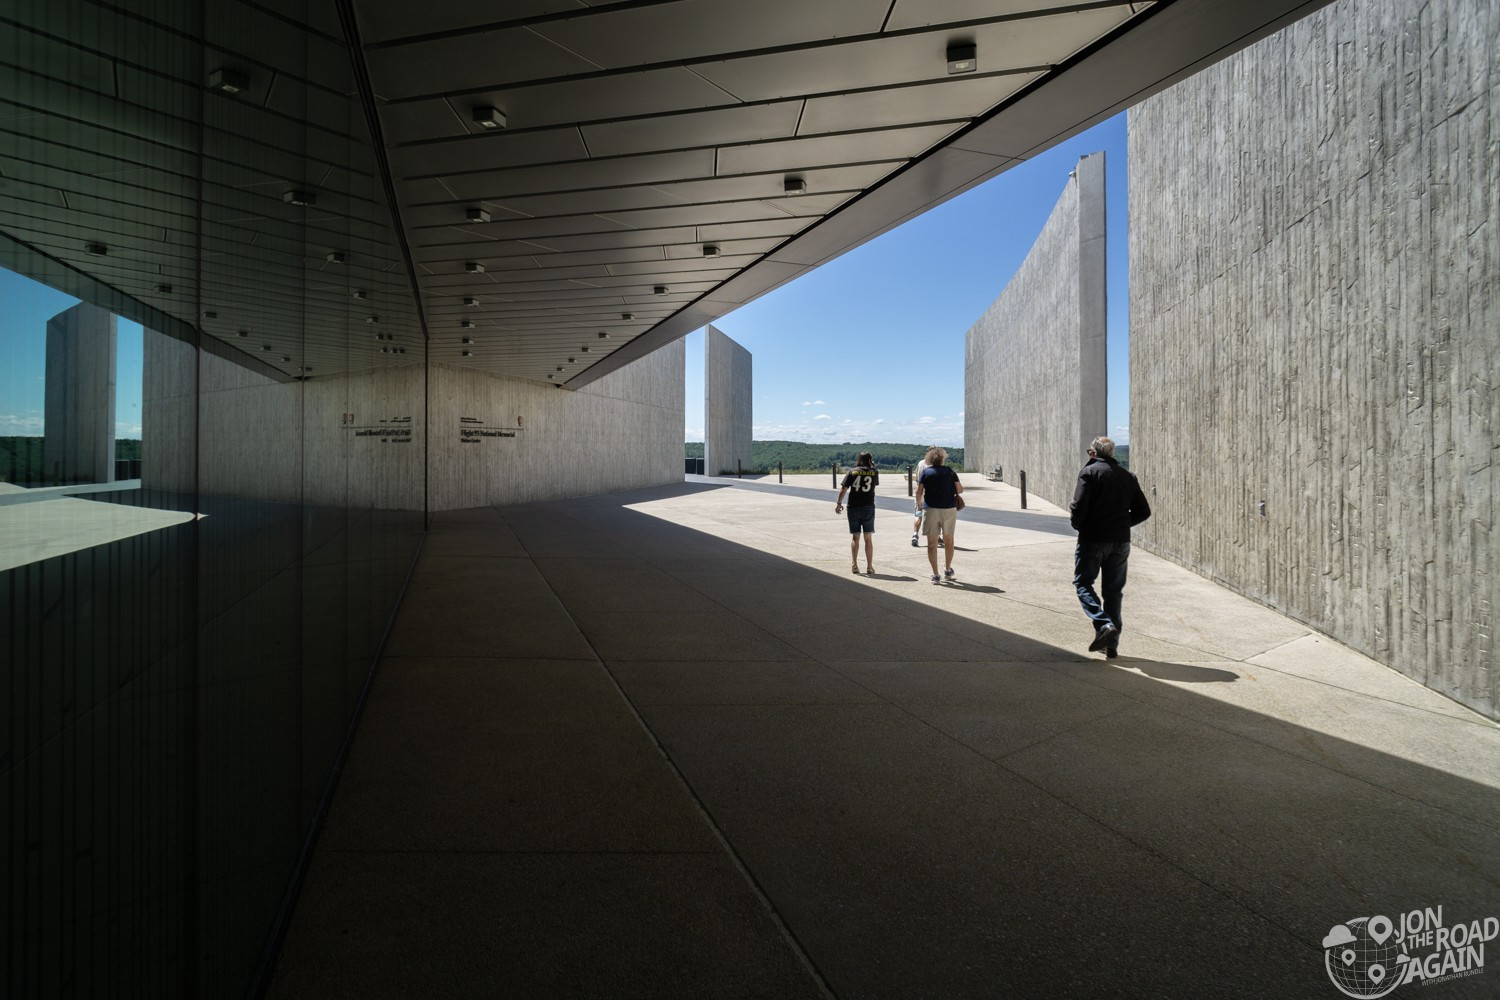 Flight 93 Memorial Visitor Center